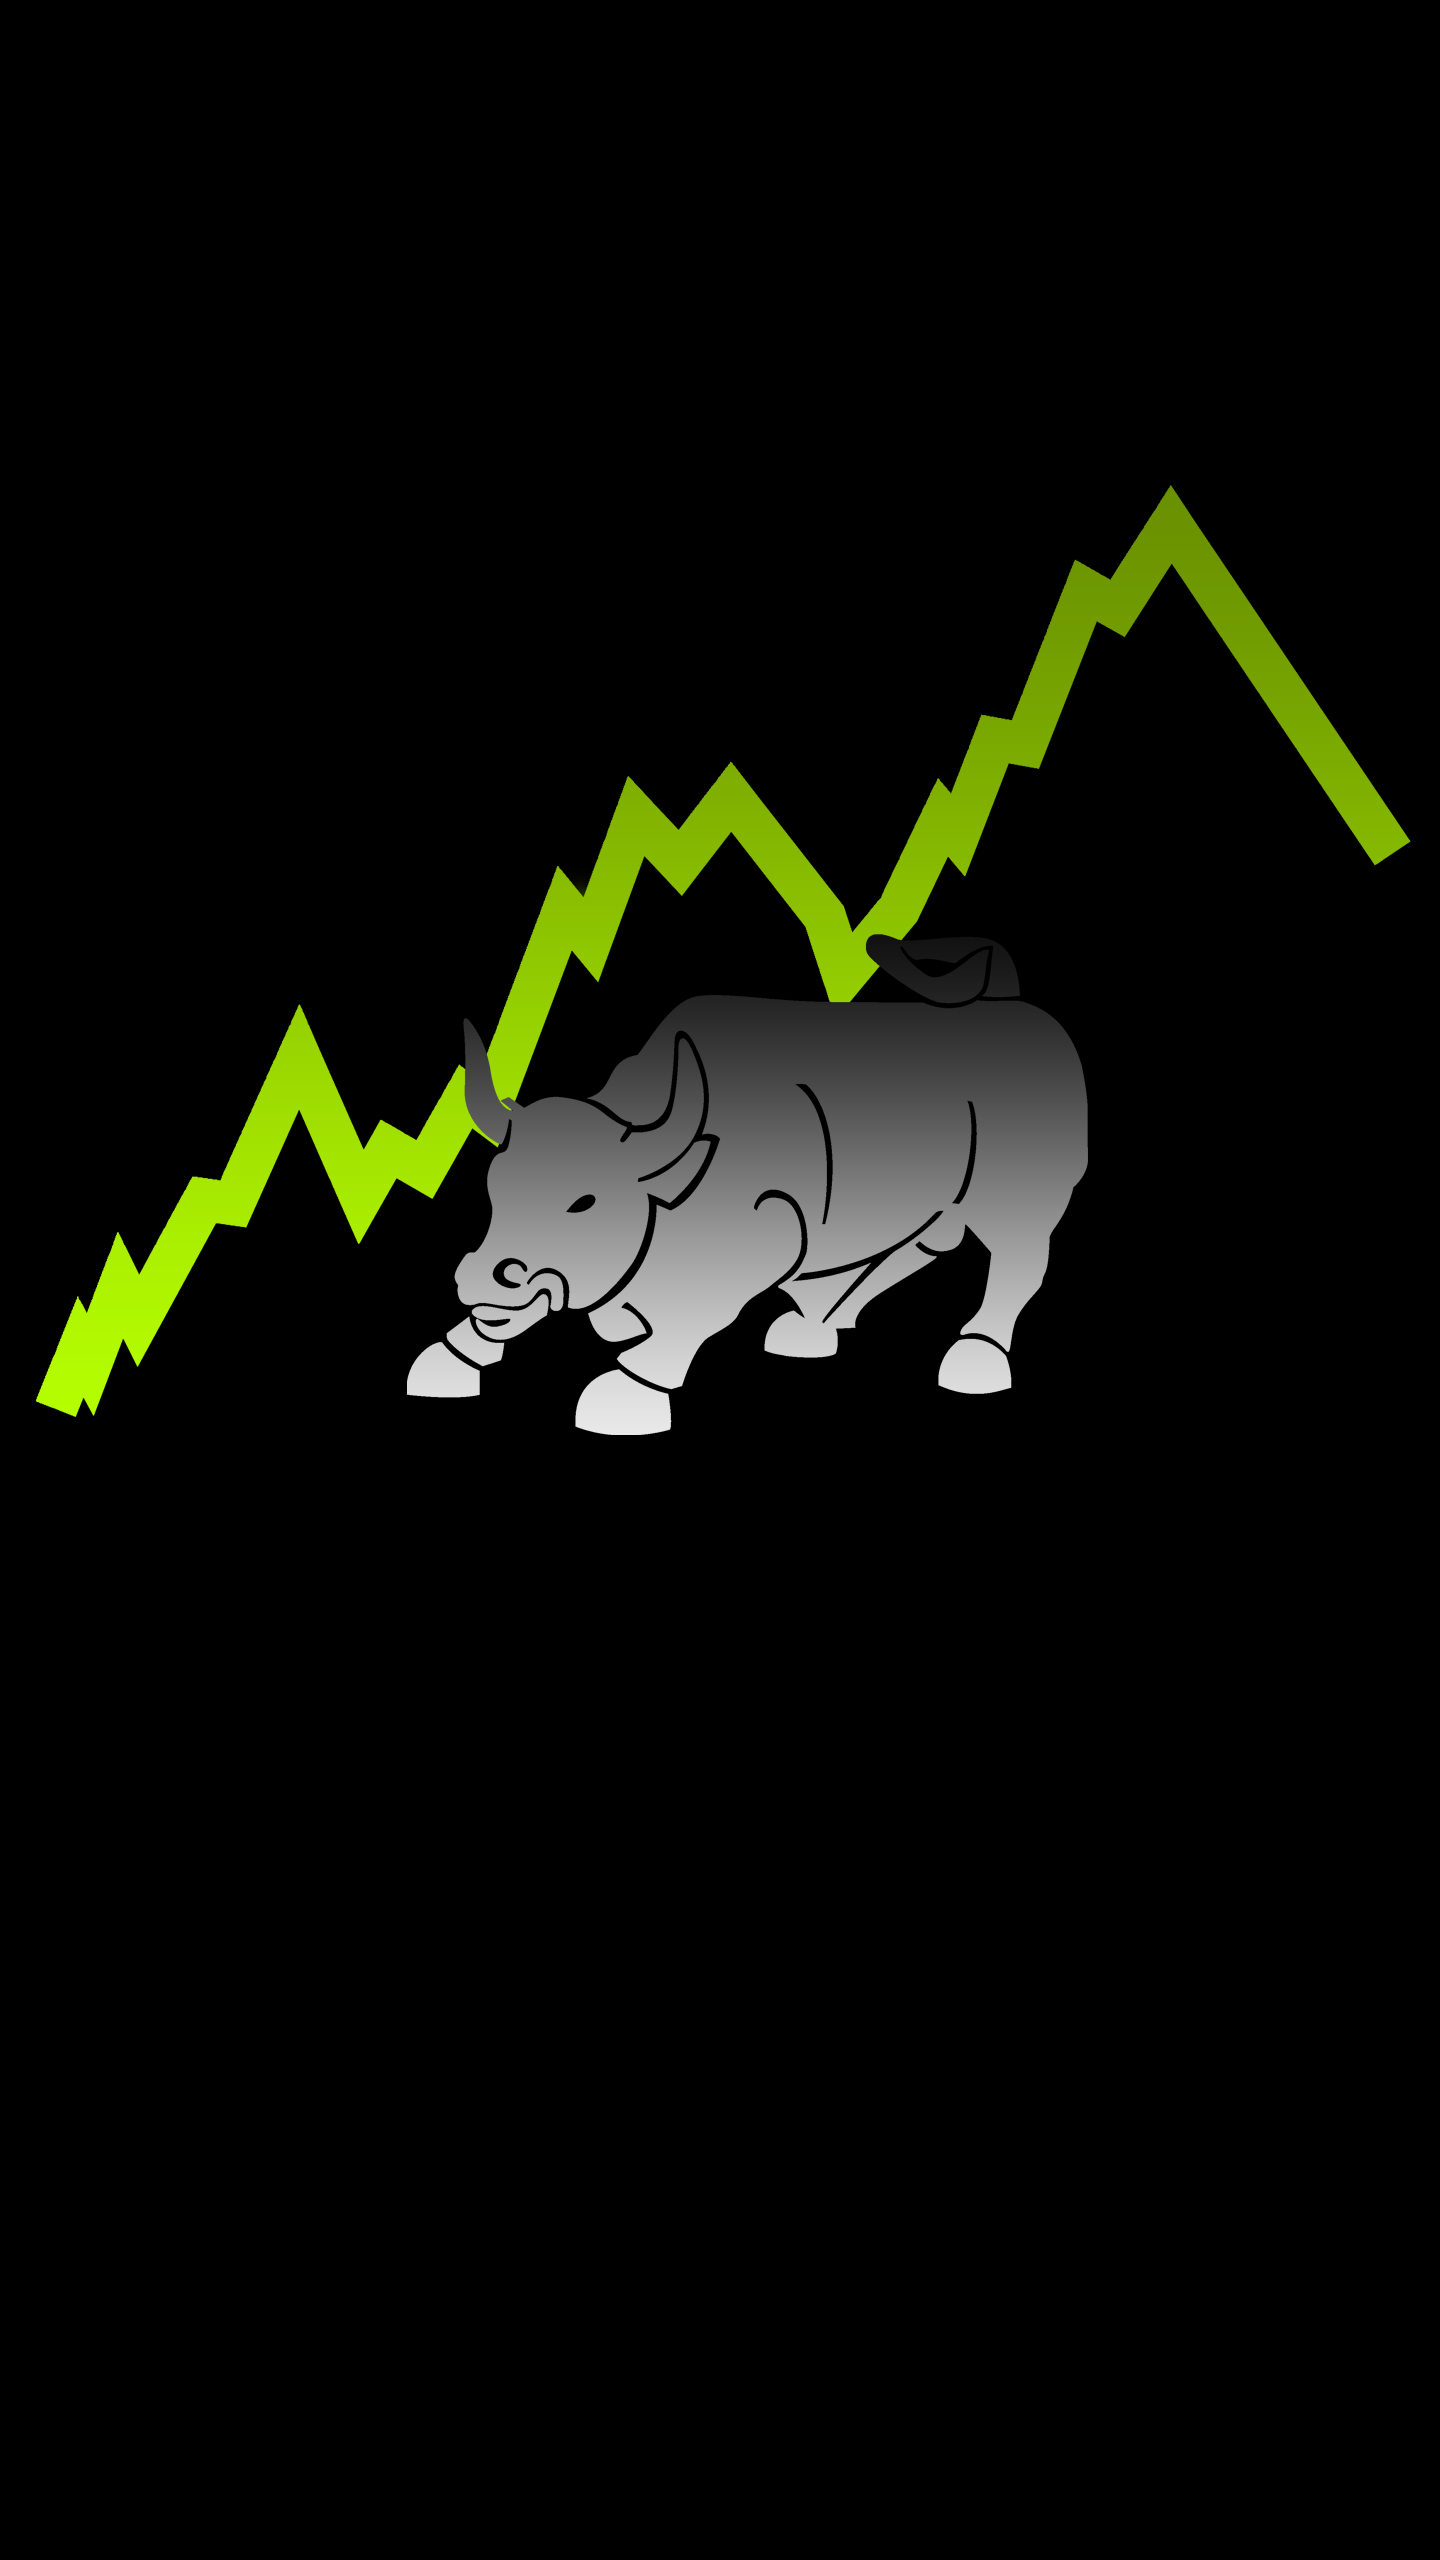 WallStreetBullAmoled.png